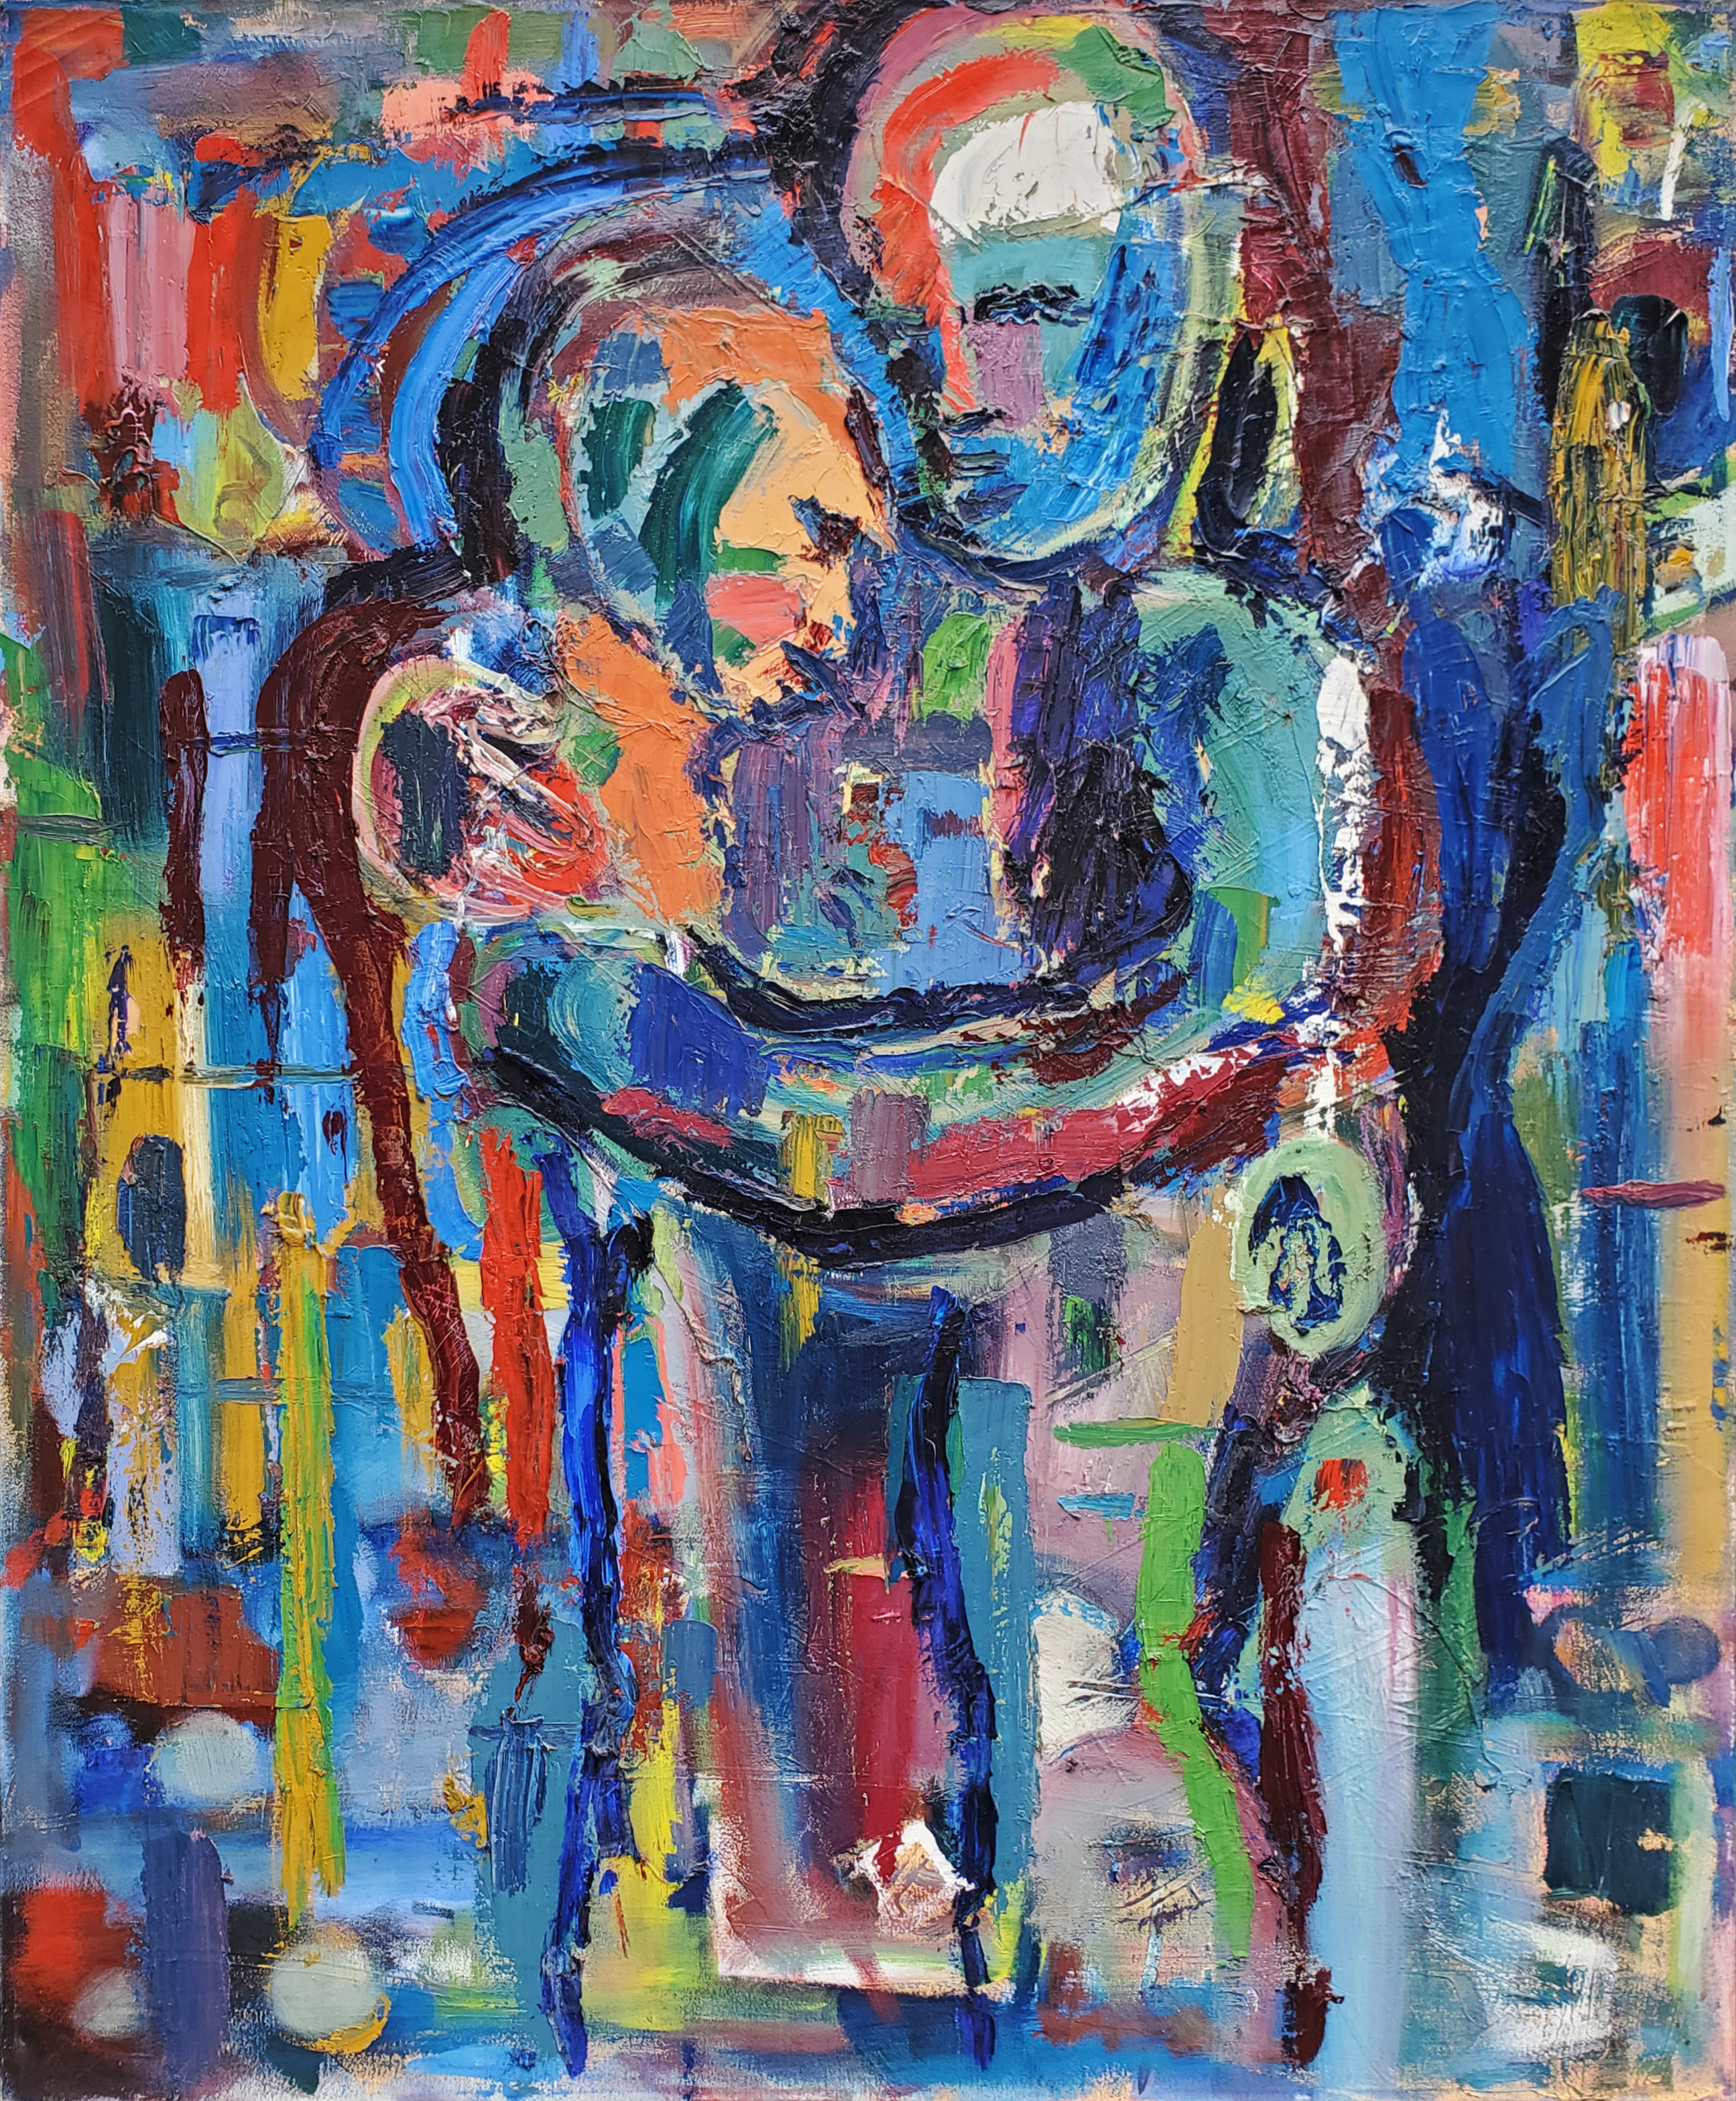 fauvist-embrace-large.jpg